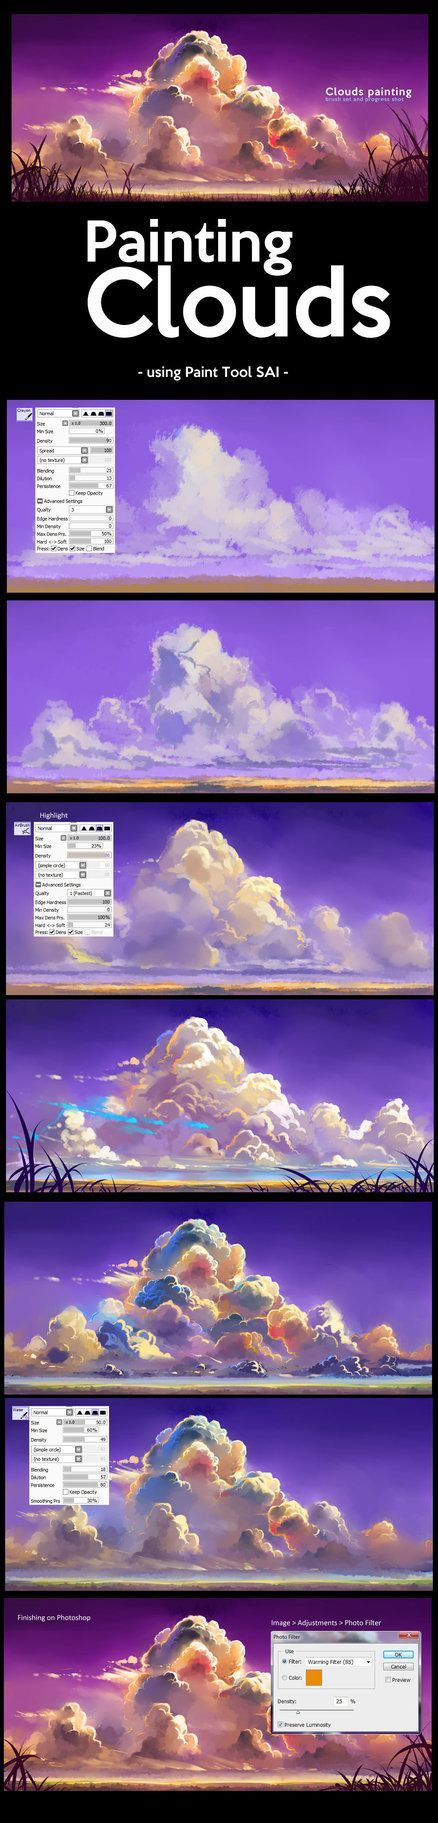 Painting Clouds in Paint Tool SAI by http://ombobon.deviantart.com ...